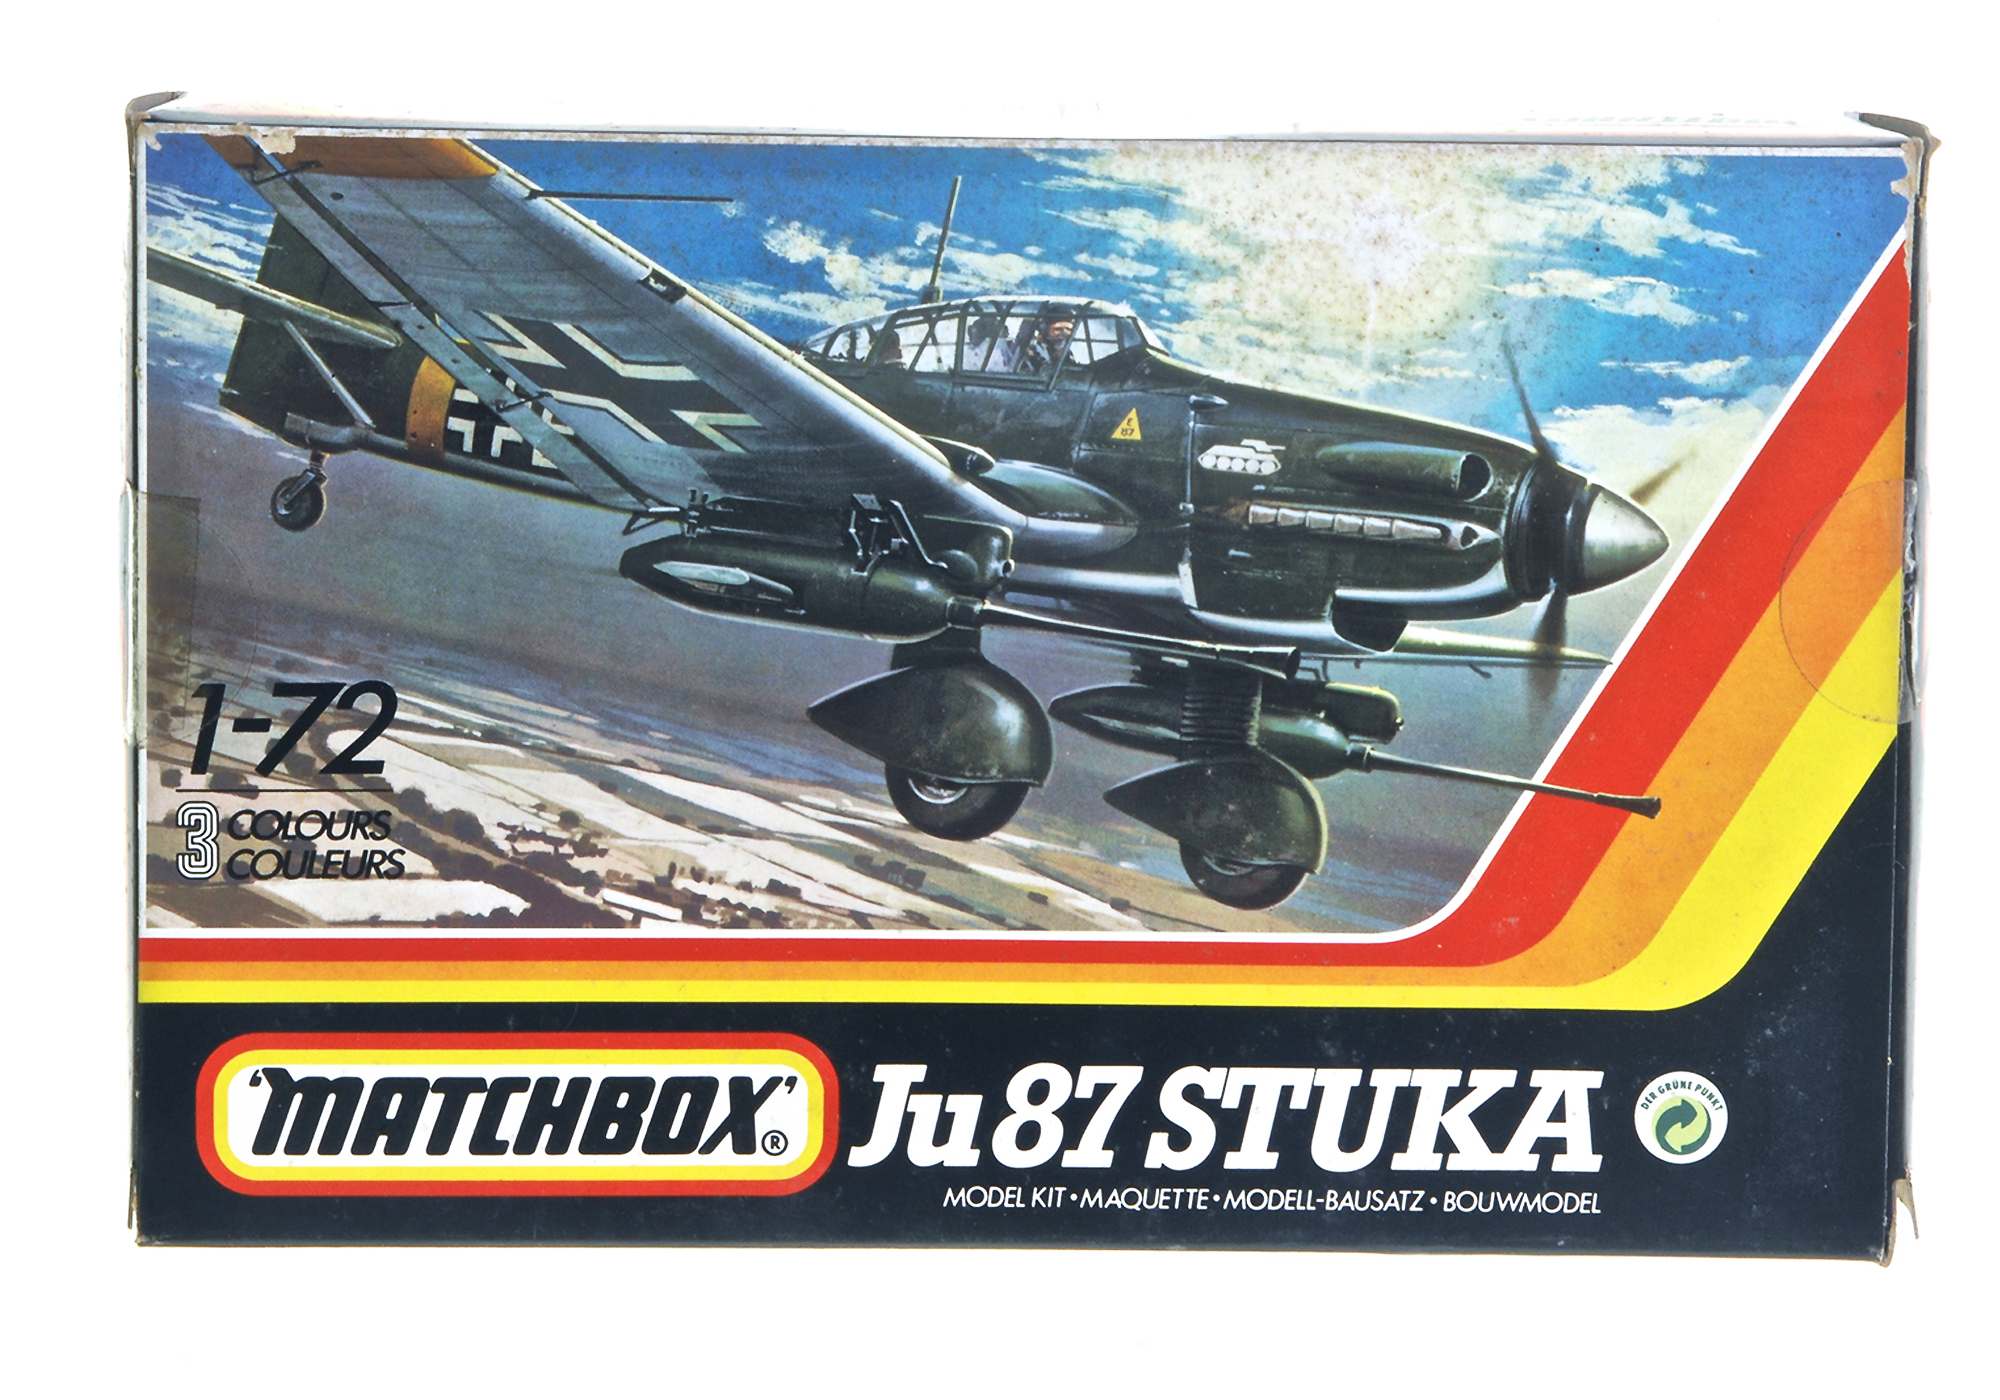 hight resolution of ju 87 stuka wwii dive bomber matchbox 1 72 scale